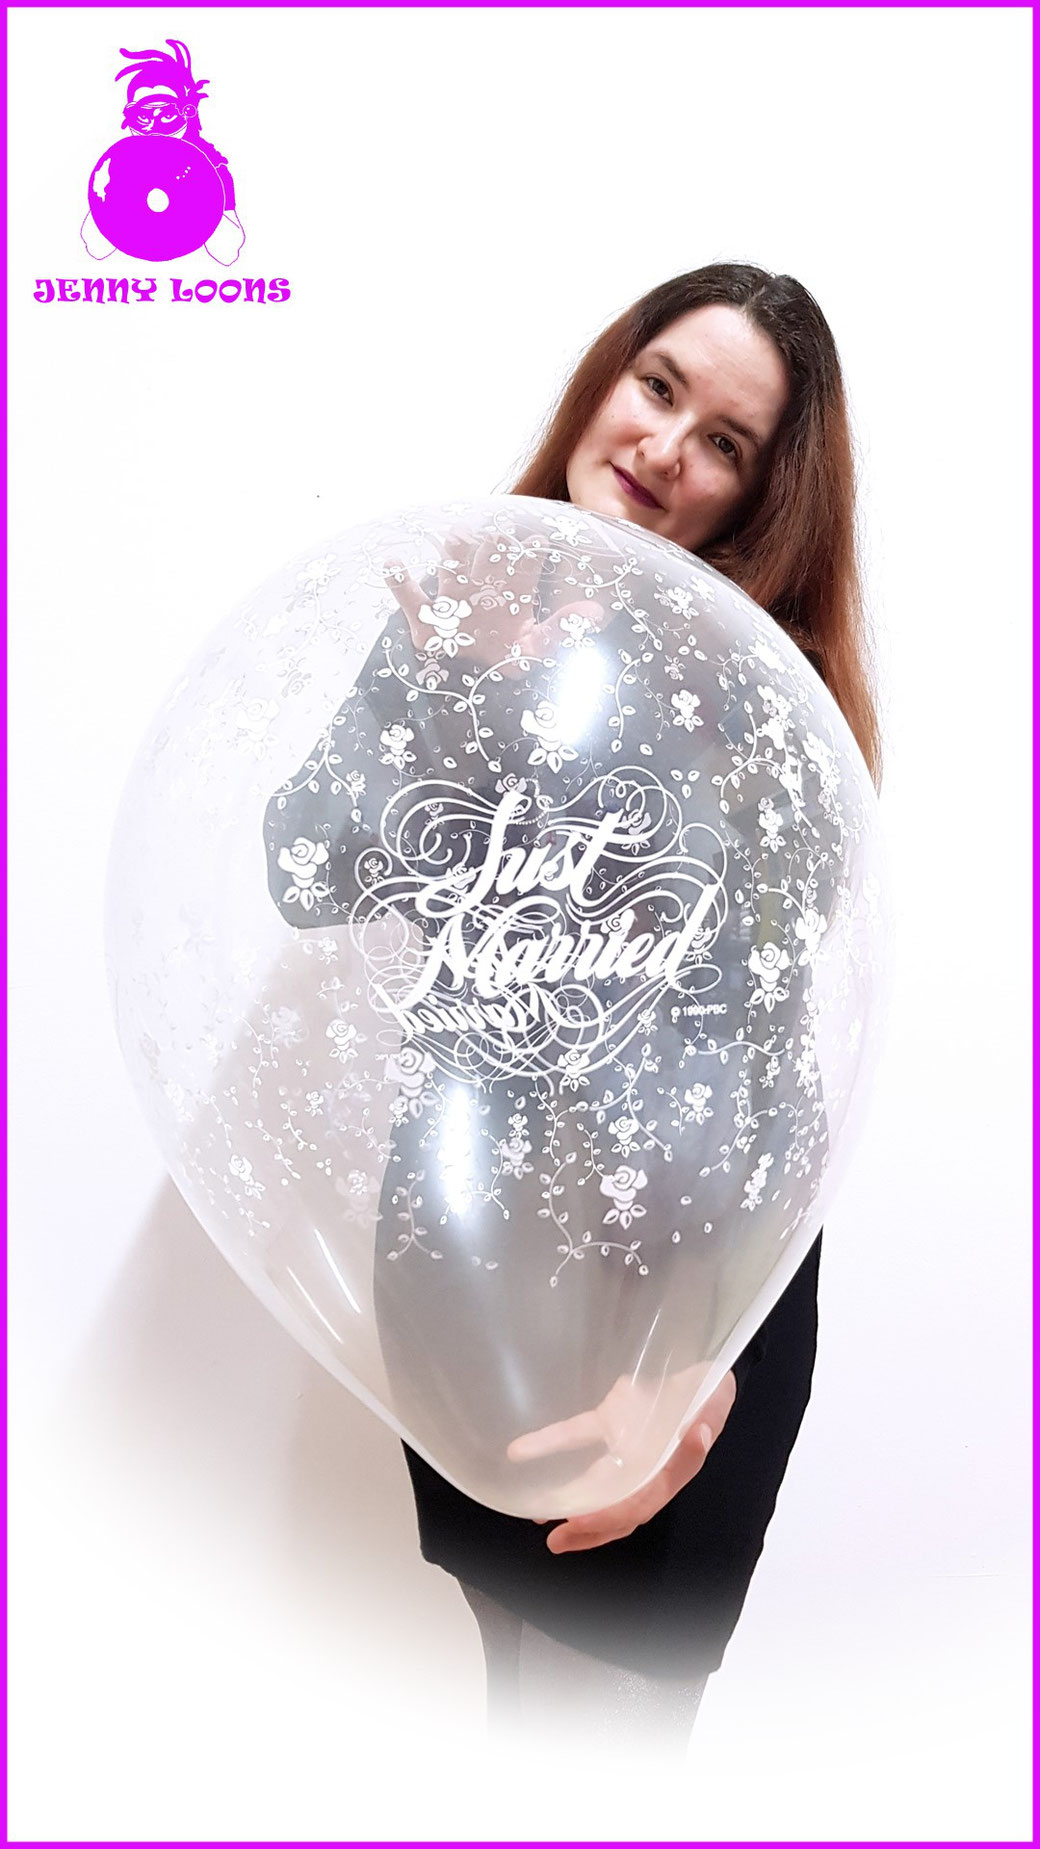 Qualatex Luftballon Ballon Hochzeit Marriage 16inch 40cm love wedding klar clear just married Balloon Balloons